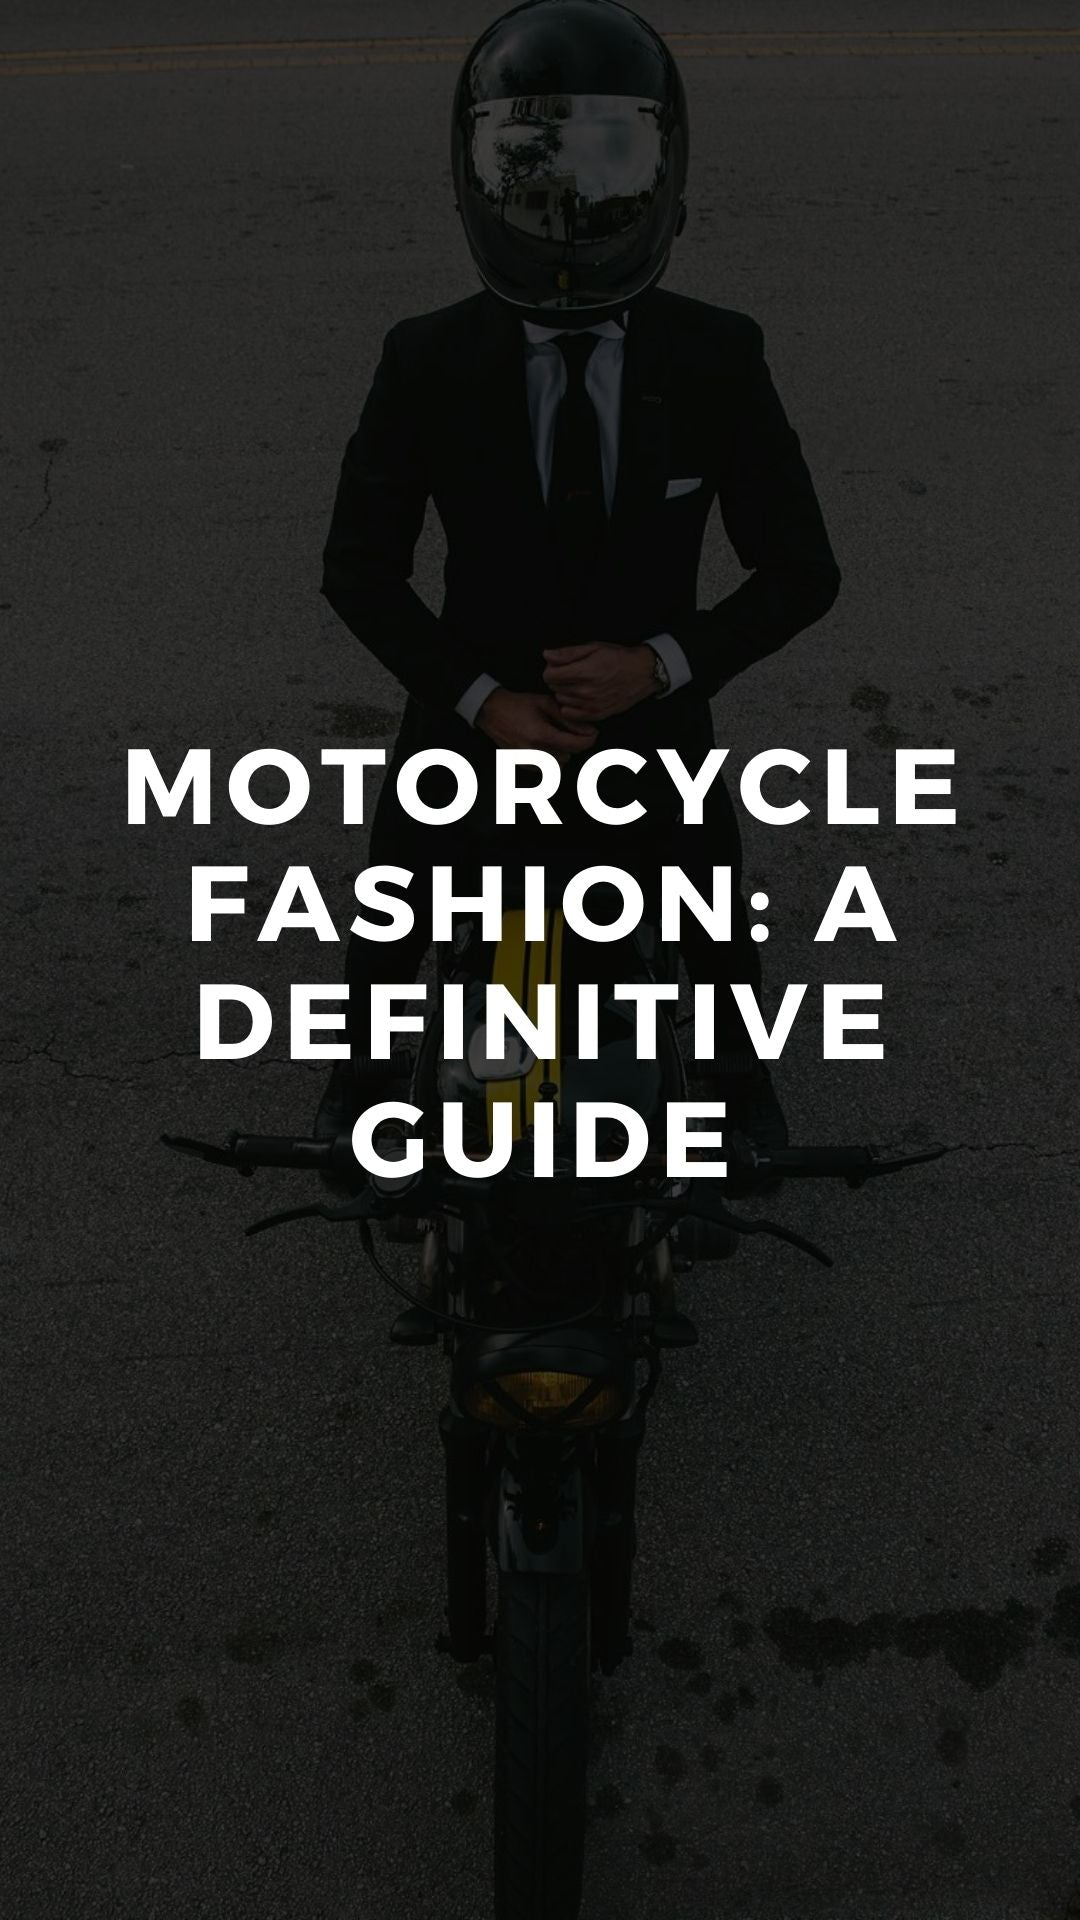 Motorcycle Fashion: A Definitive Guide